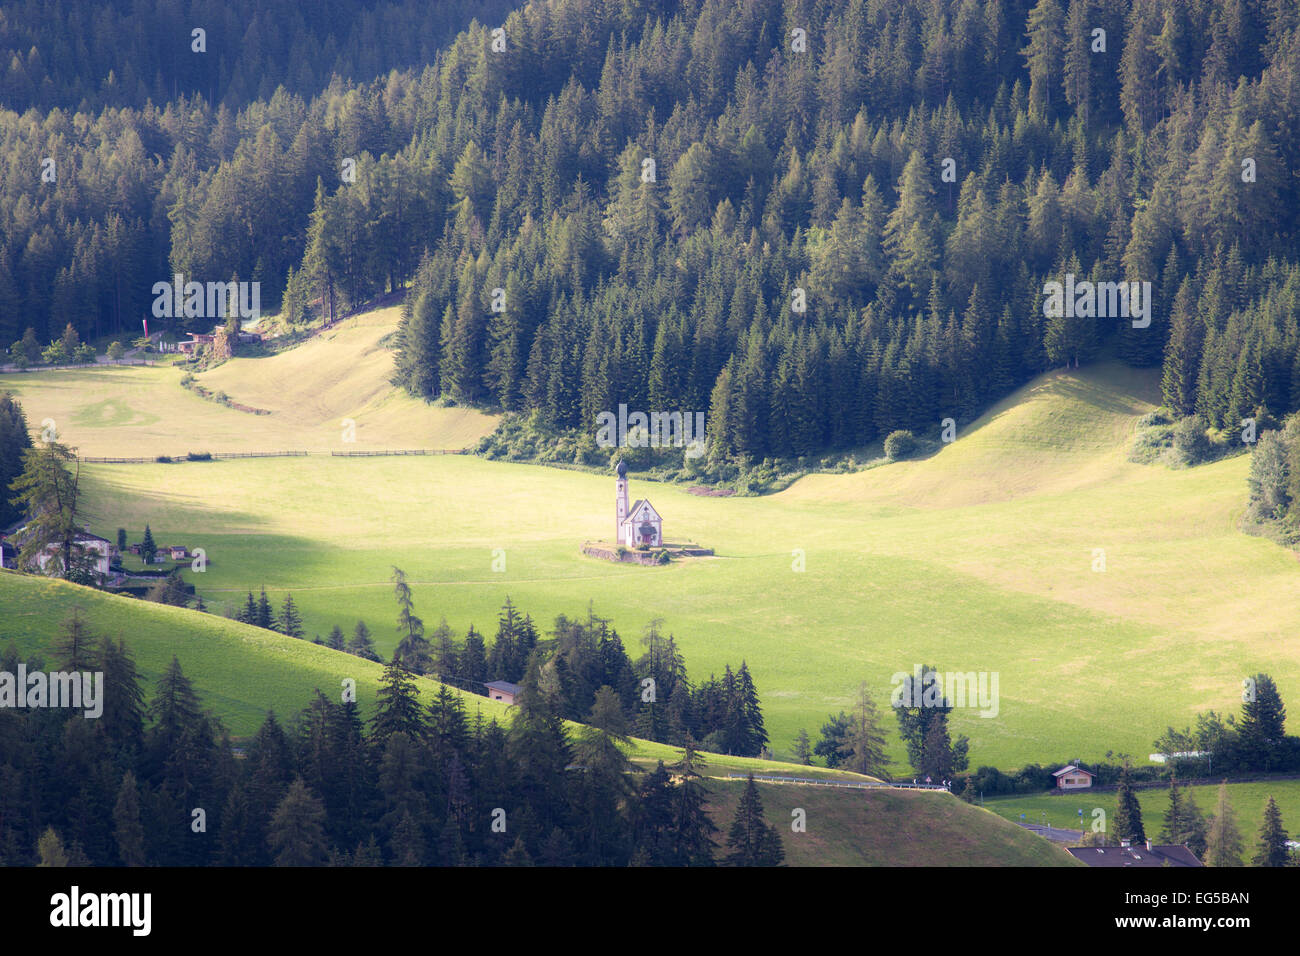 Santa Maddalena church in green alpine valley, Val di Funes, Dolomiti Mountains, Italy - Stock Image